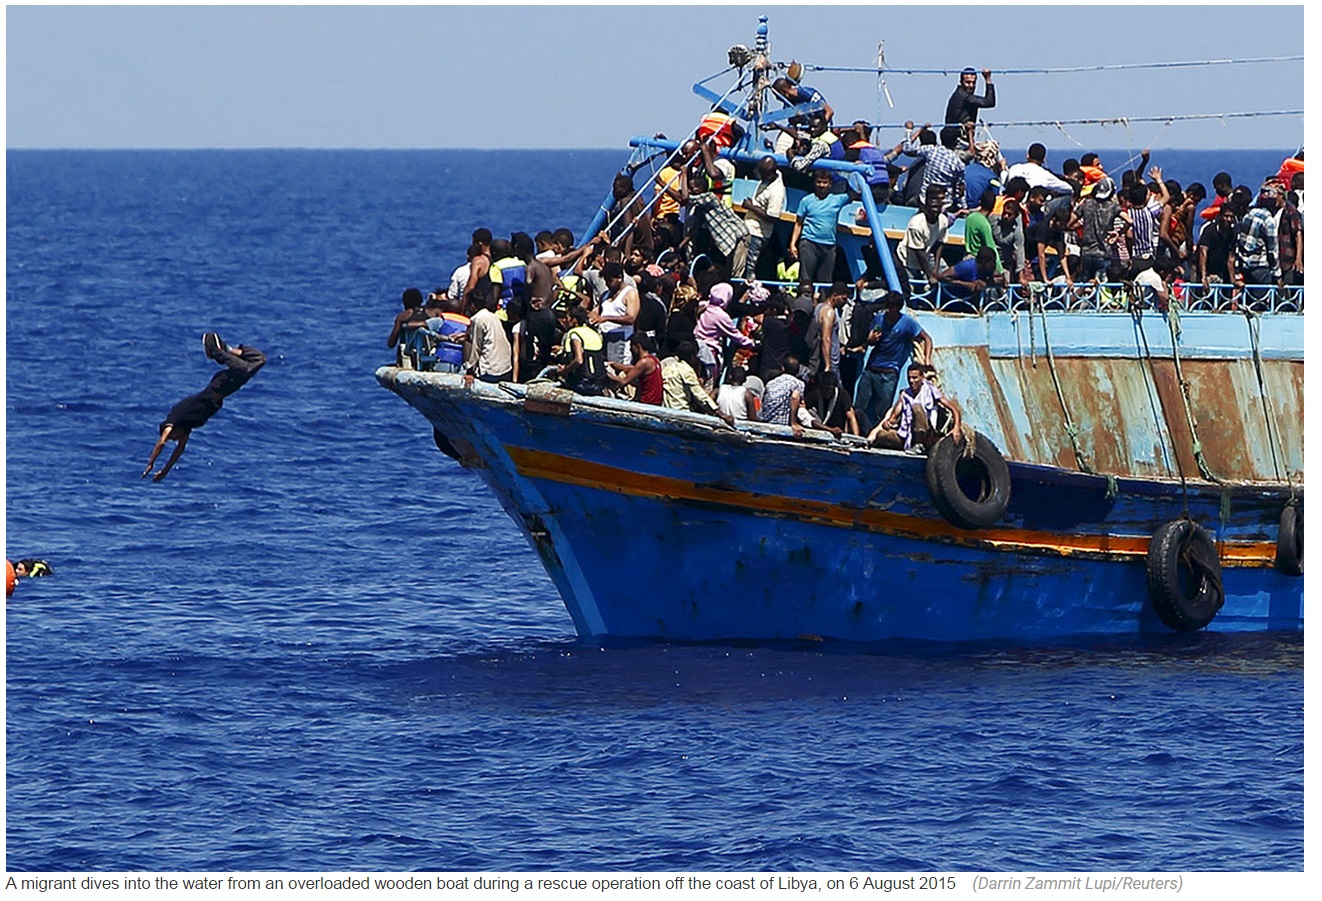 Migrant dives into the water from an overloaded wooden boat during a rescue operation off the coast of Libya on 6 August 2015